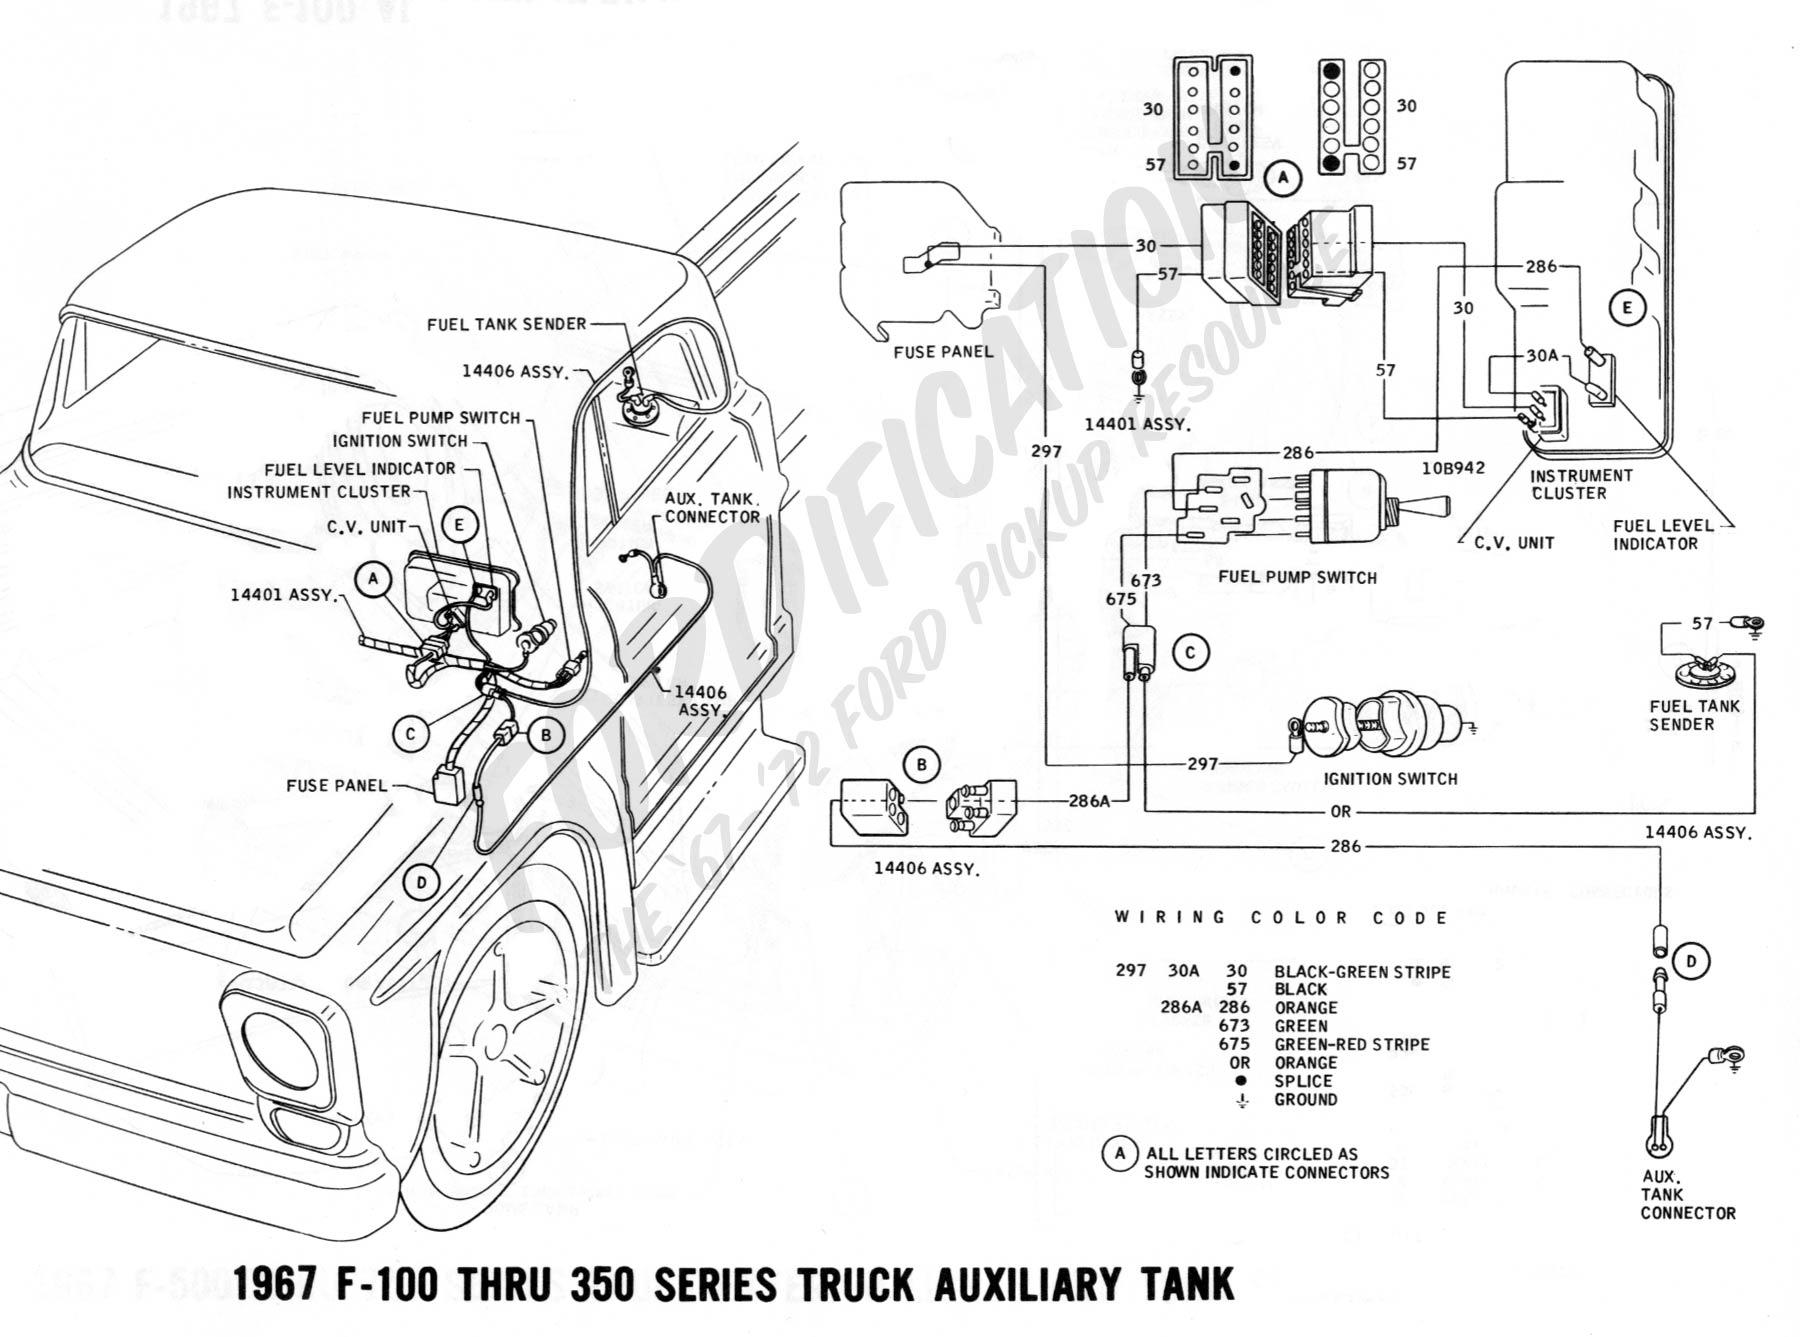 wiring 1967auxtank ford truck technical drawings and schematics section h wiring 1994 ford f250 wiring diagram at honlapkeszites.co